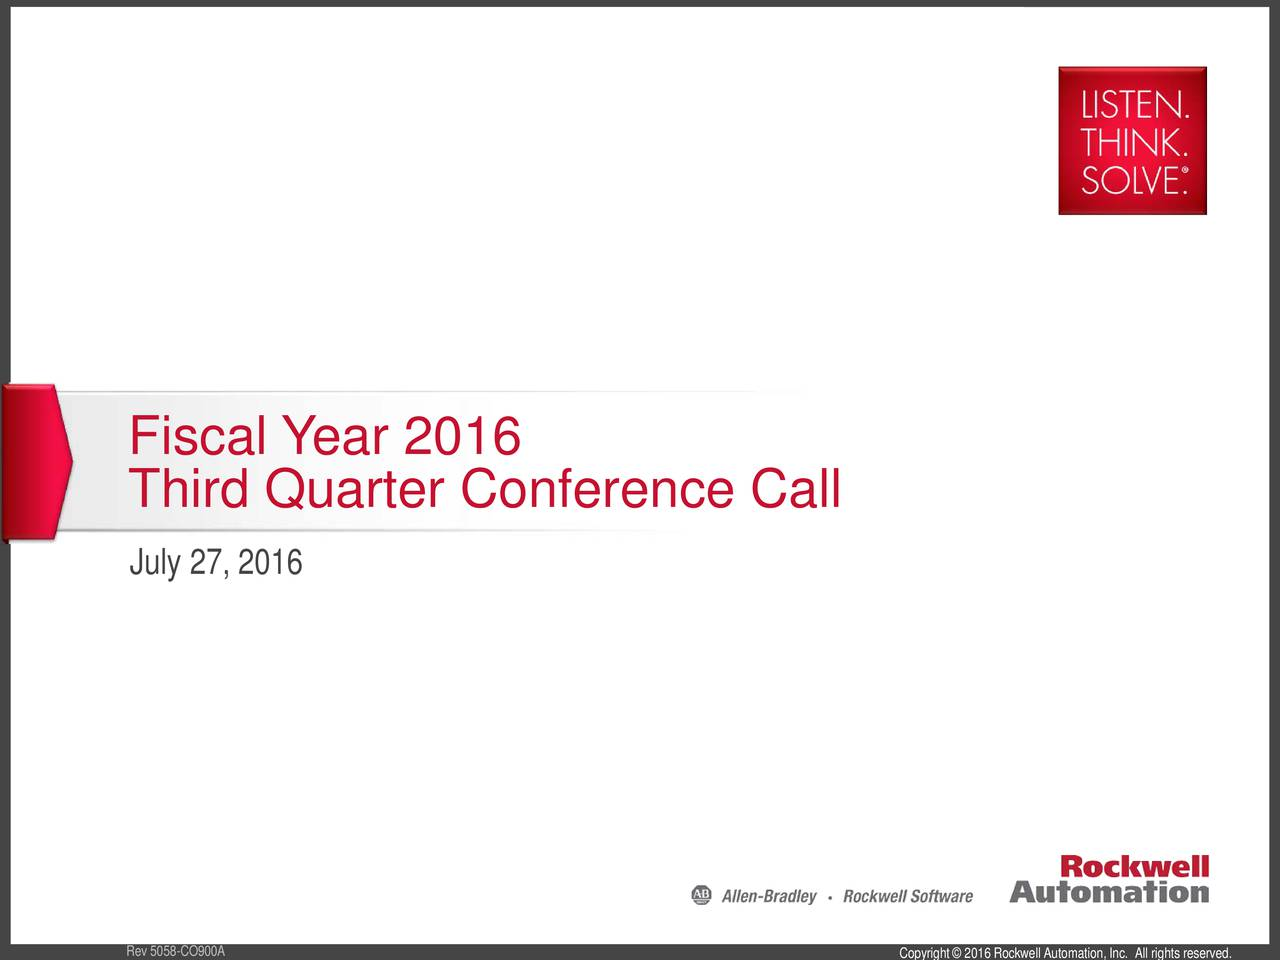 Third Quarter Conference Call July 27, 2016